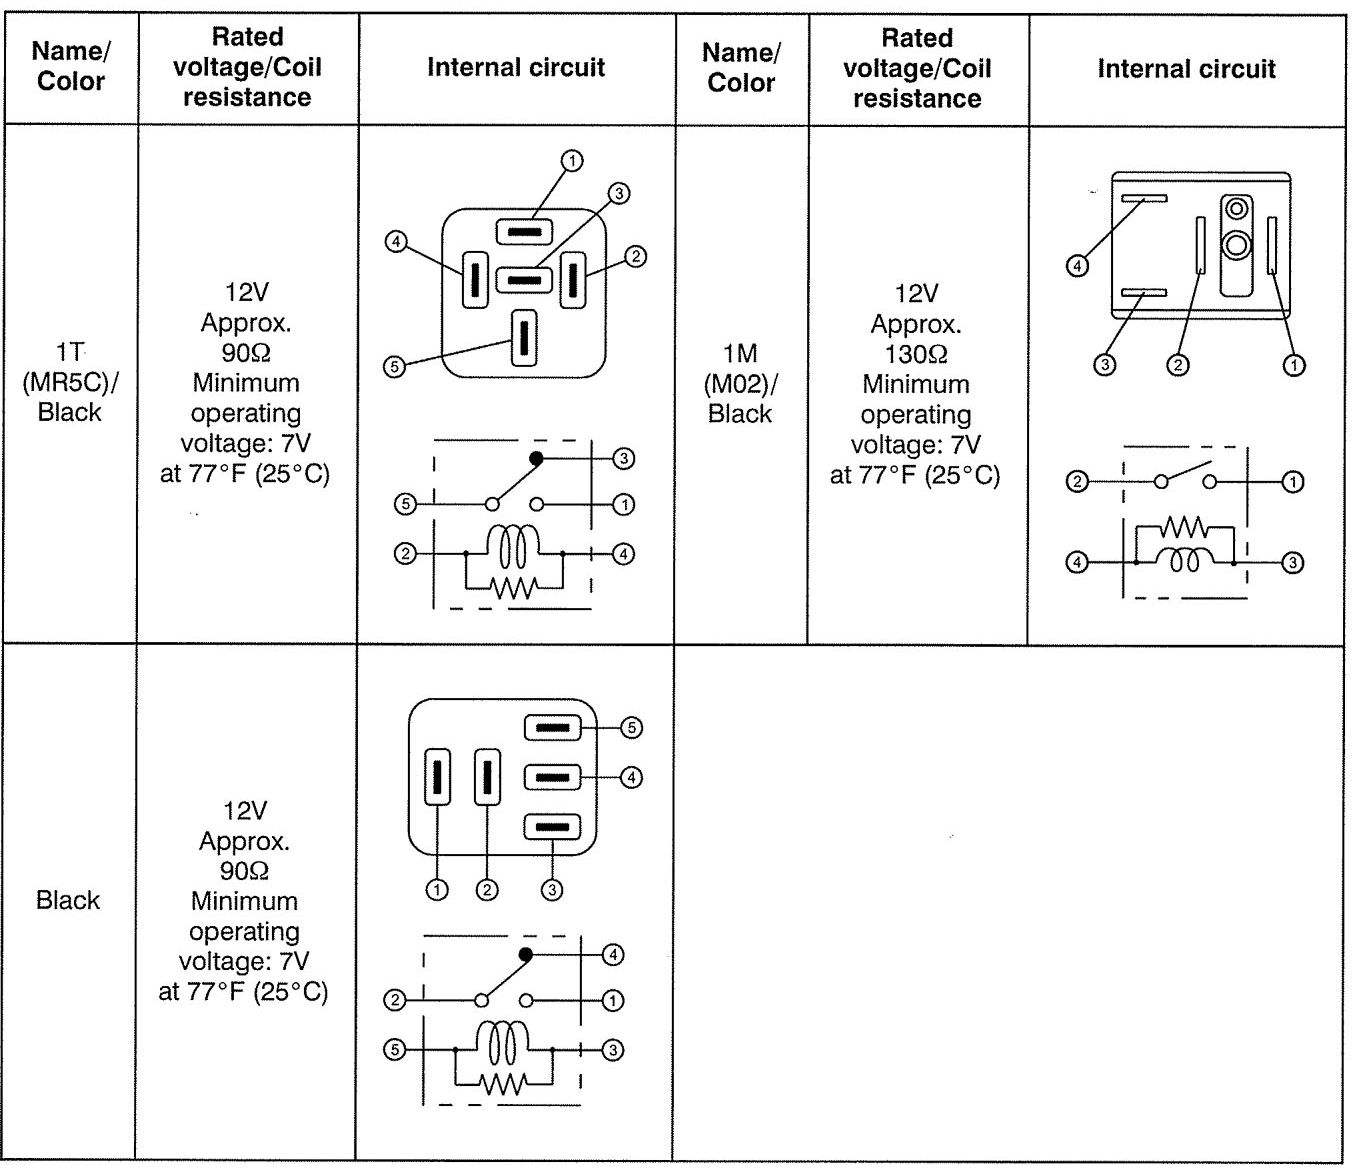 Isuzu Axiom 2004 Fuse Box Diagram Auto Genius Skoda Fabia 1 2 Layout Relay Sepcification